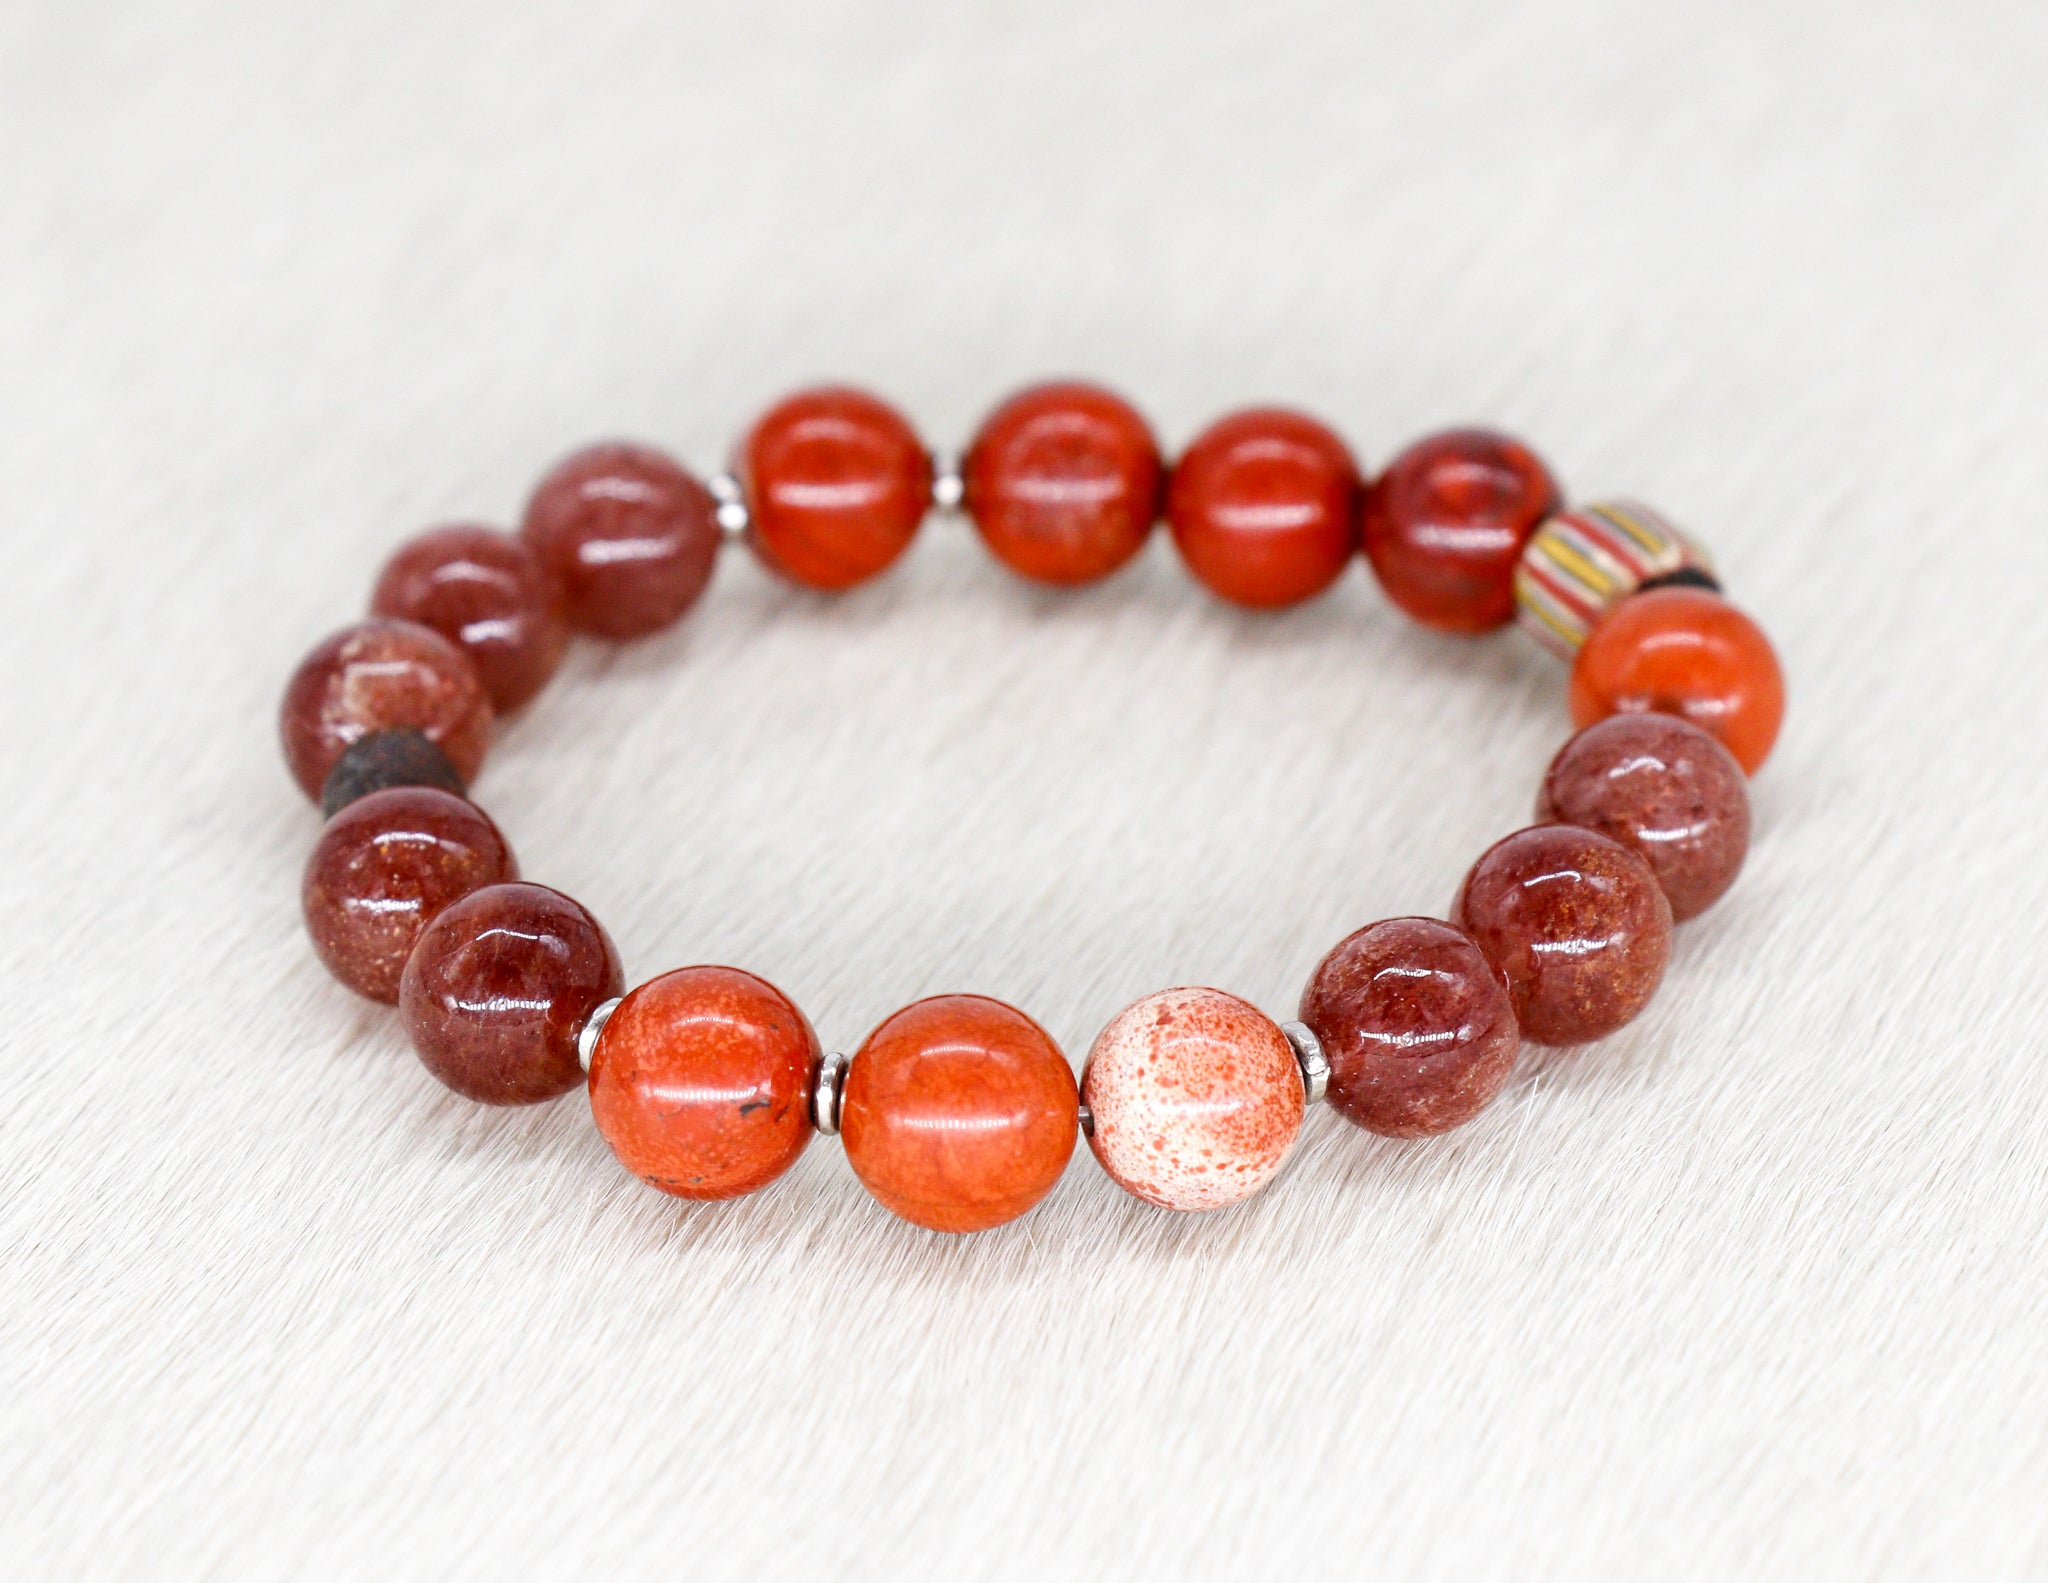 Red jasper and aventurine bracelet